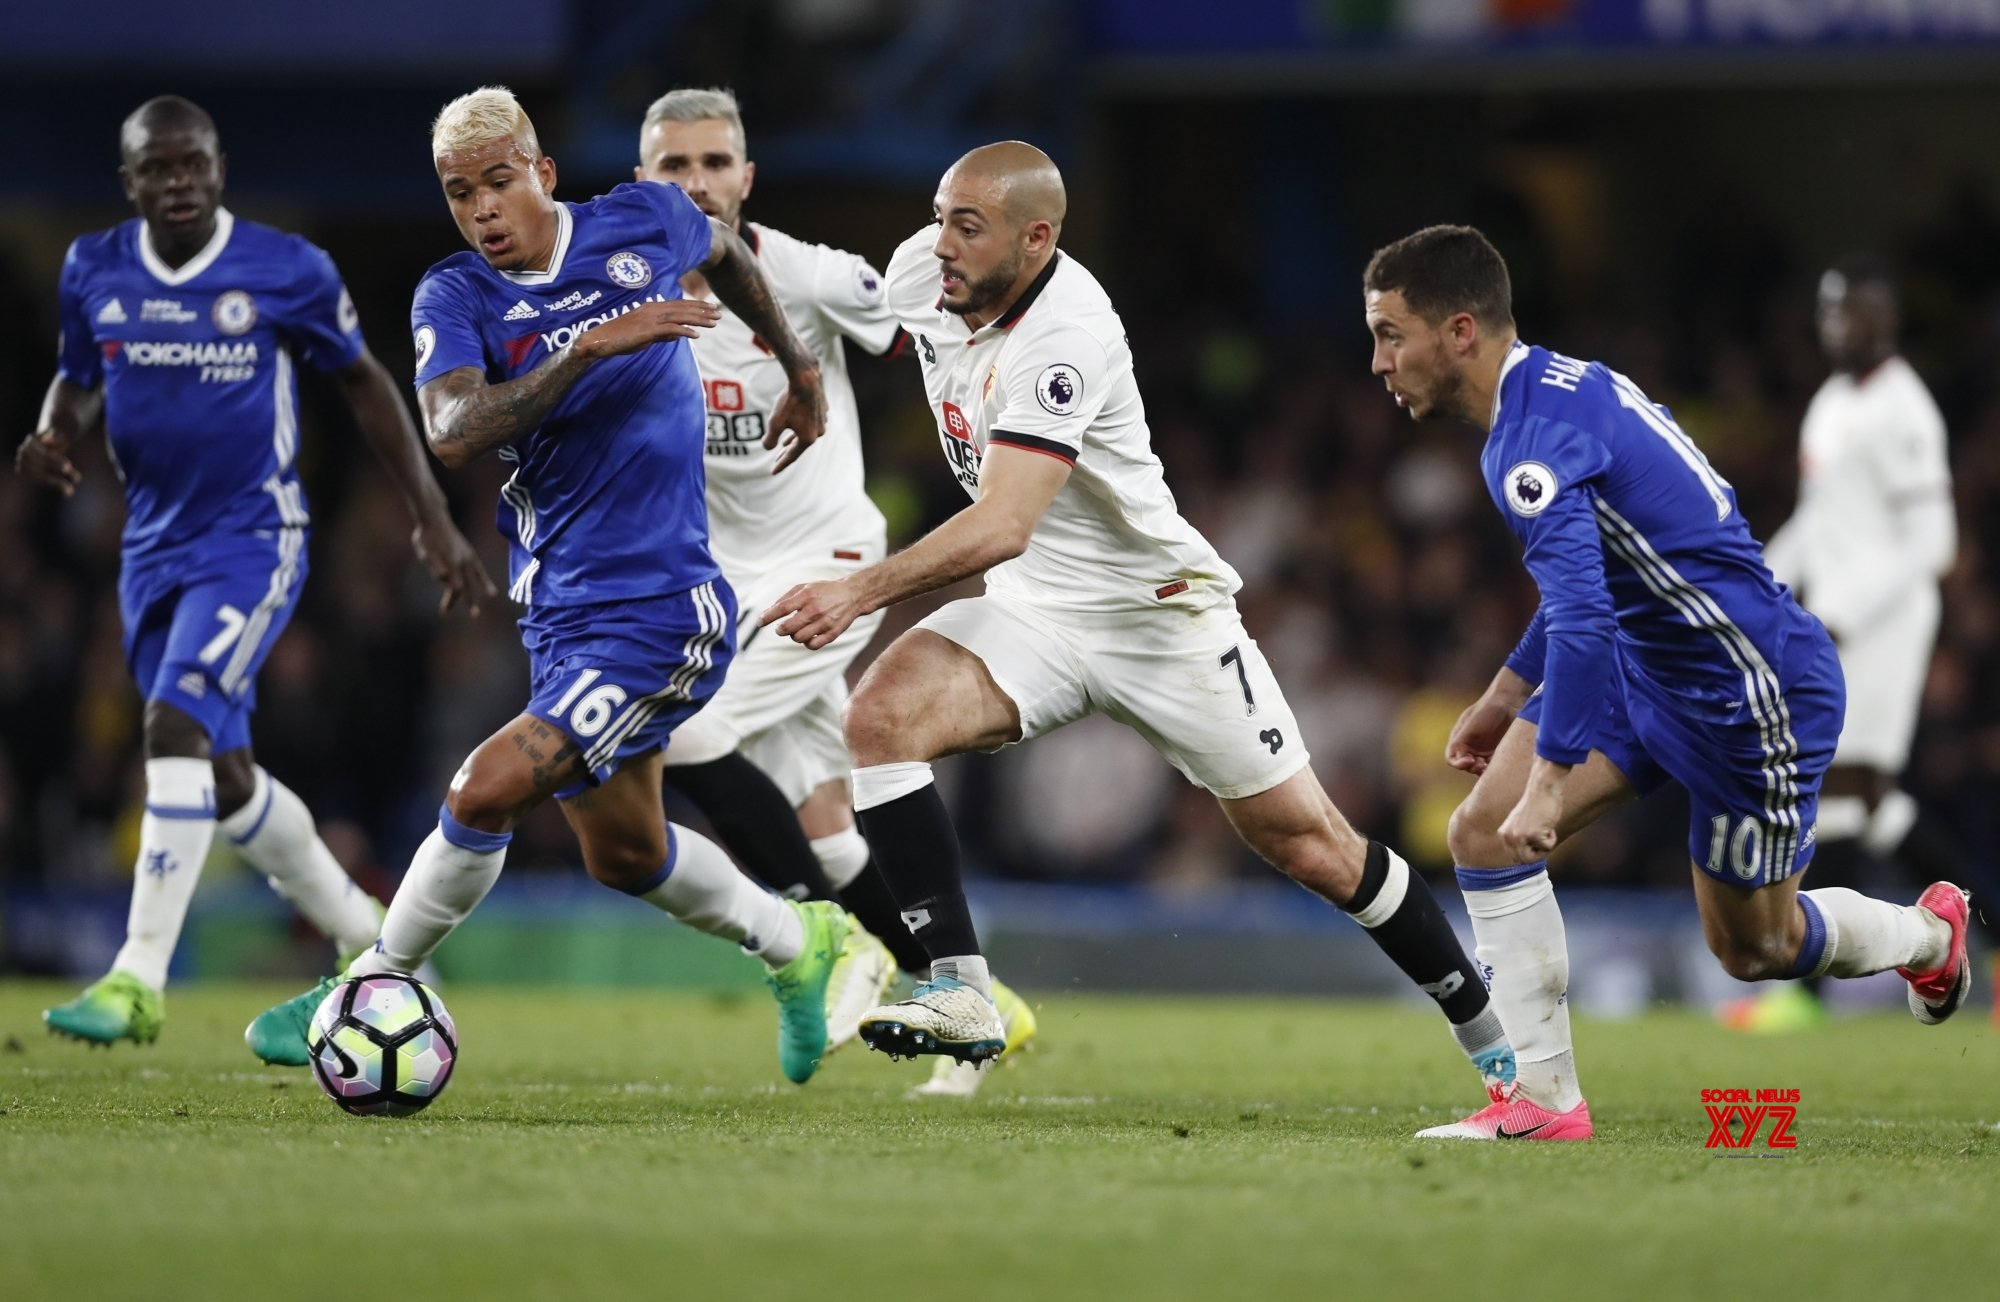 People closing their eyes to the threat: Pearson on Premier League restart